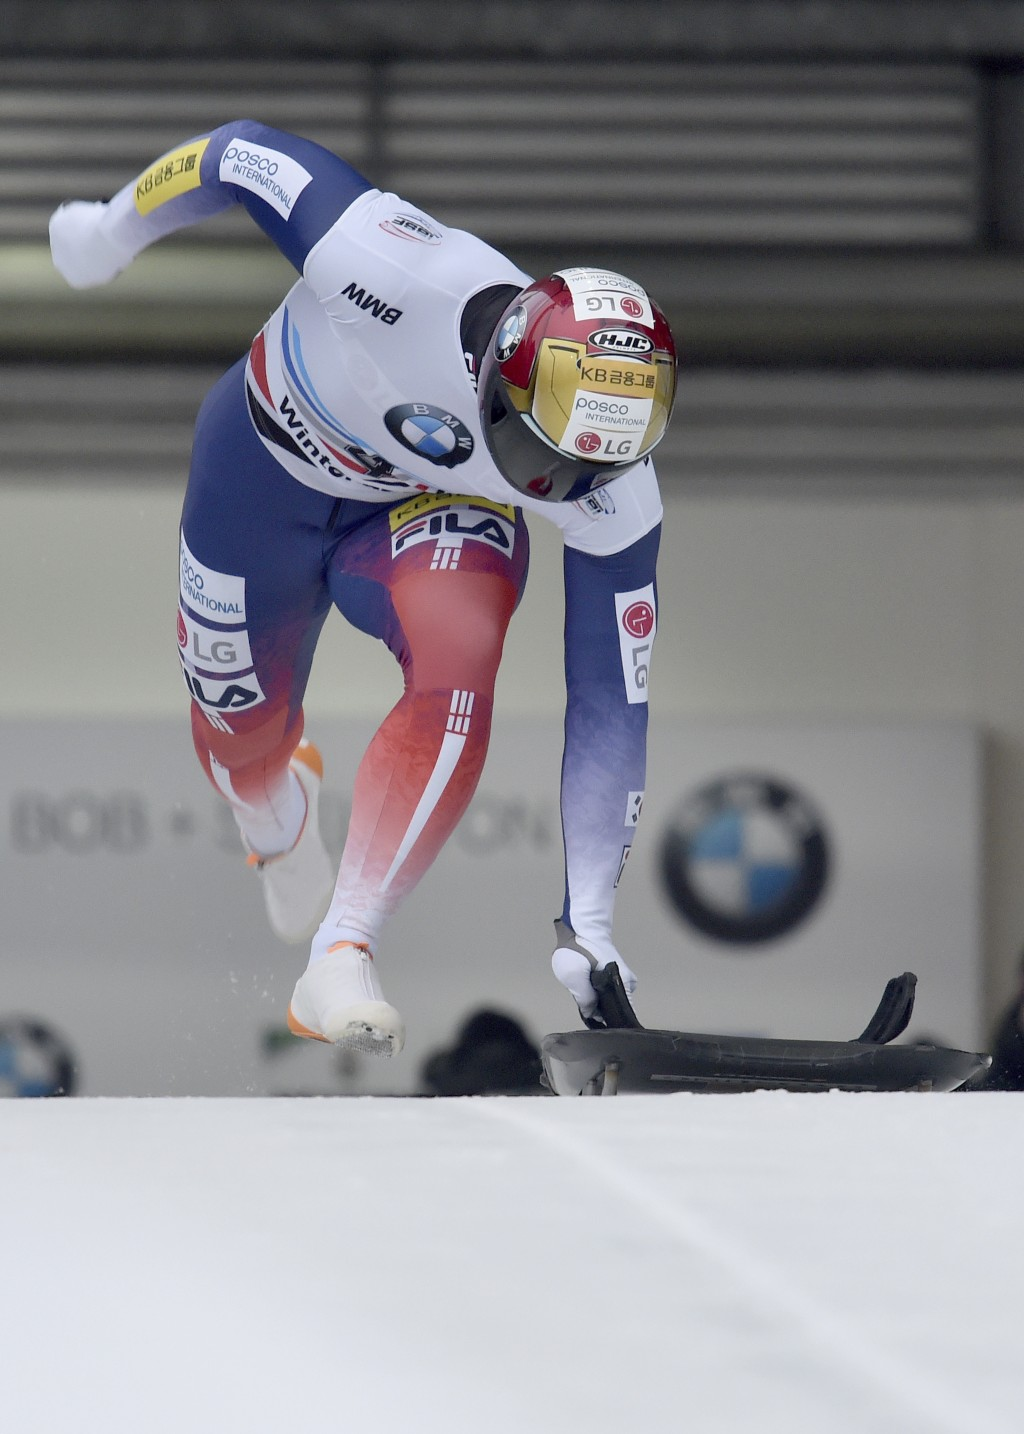 Yun Sung Bin from South Korea at the start of the ice channel in the first run of the men's Skeleton world cup in Winterberg, Germany, Sunday, Jan.5, ...